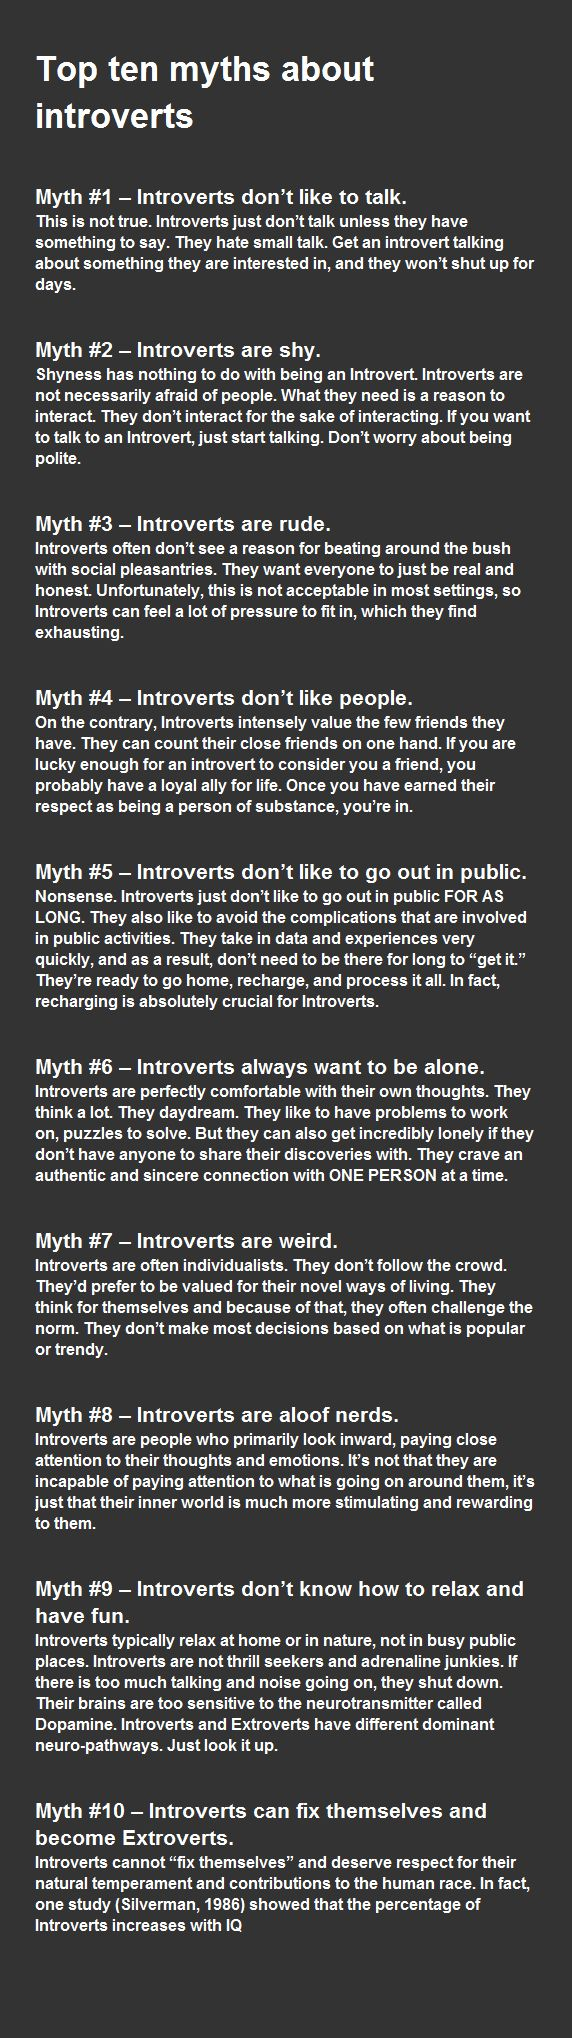 I wish Jim Jenna and everyone of my friends could read this and really understand what it's like to be and introvert.